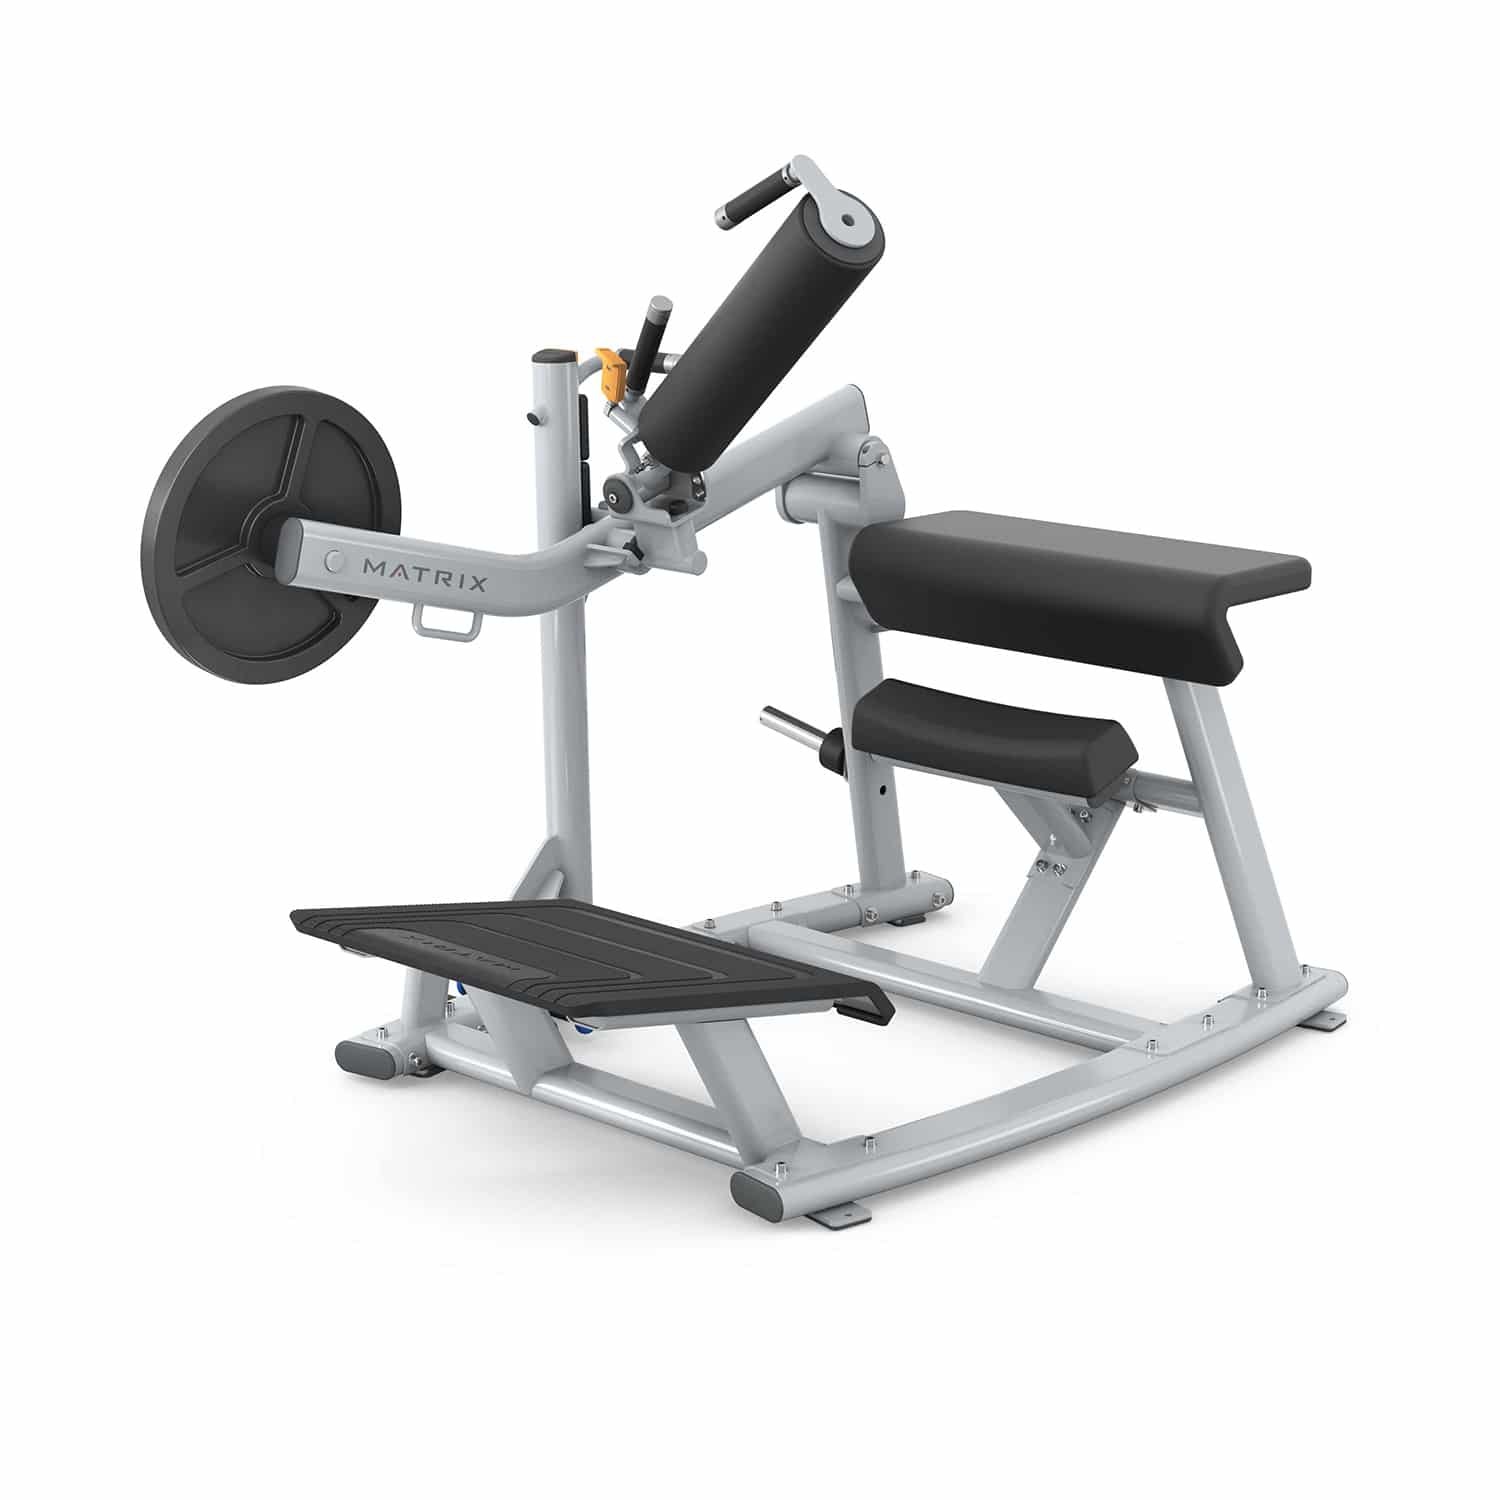 MX19_MAGNUM MG-PL78 glute trainer_Iced Slvr_detail_pivoting pad_lores